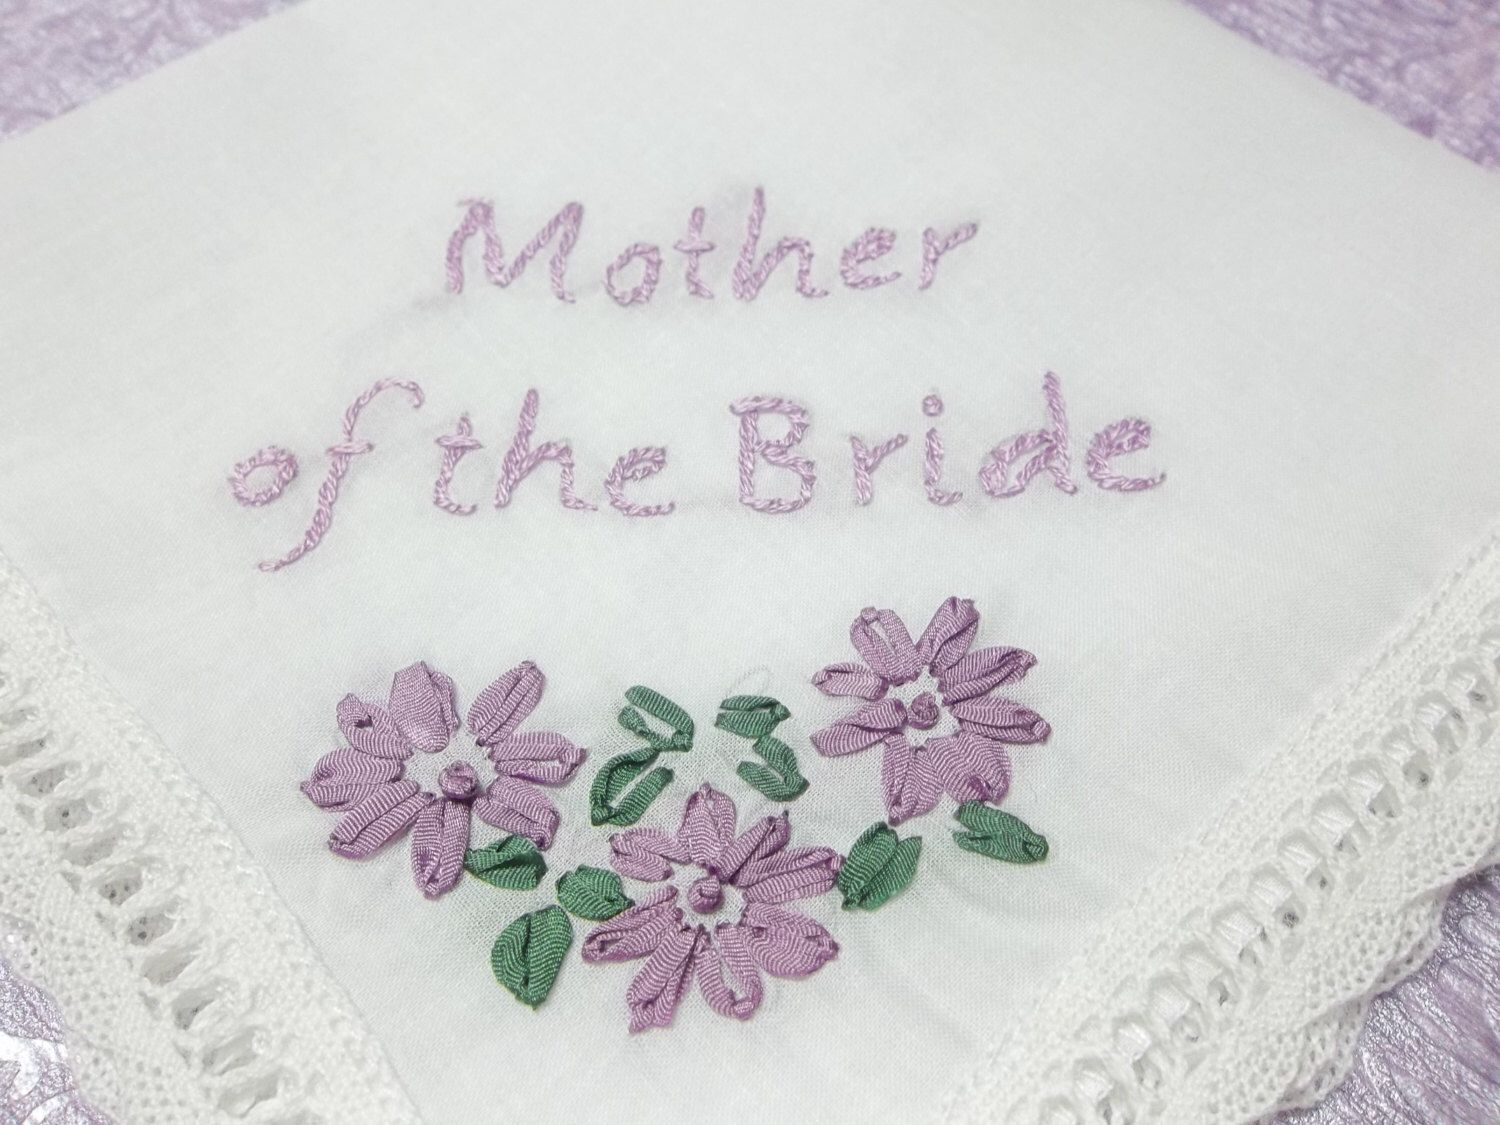 Mother of bride, mother of groom hand embroidered, wedding handkerchief, hankerchief, wedding favor, lilac silk ribbon embroidery, by SheriAngellCreations on Etsy https://www.etsy.com/listing/261849778/mother-of-bride-mother-of-groom-hand